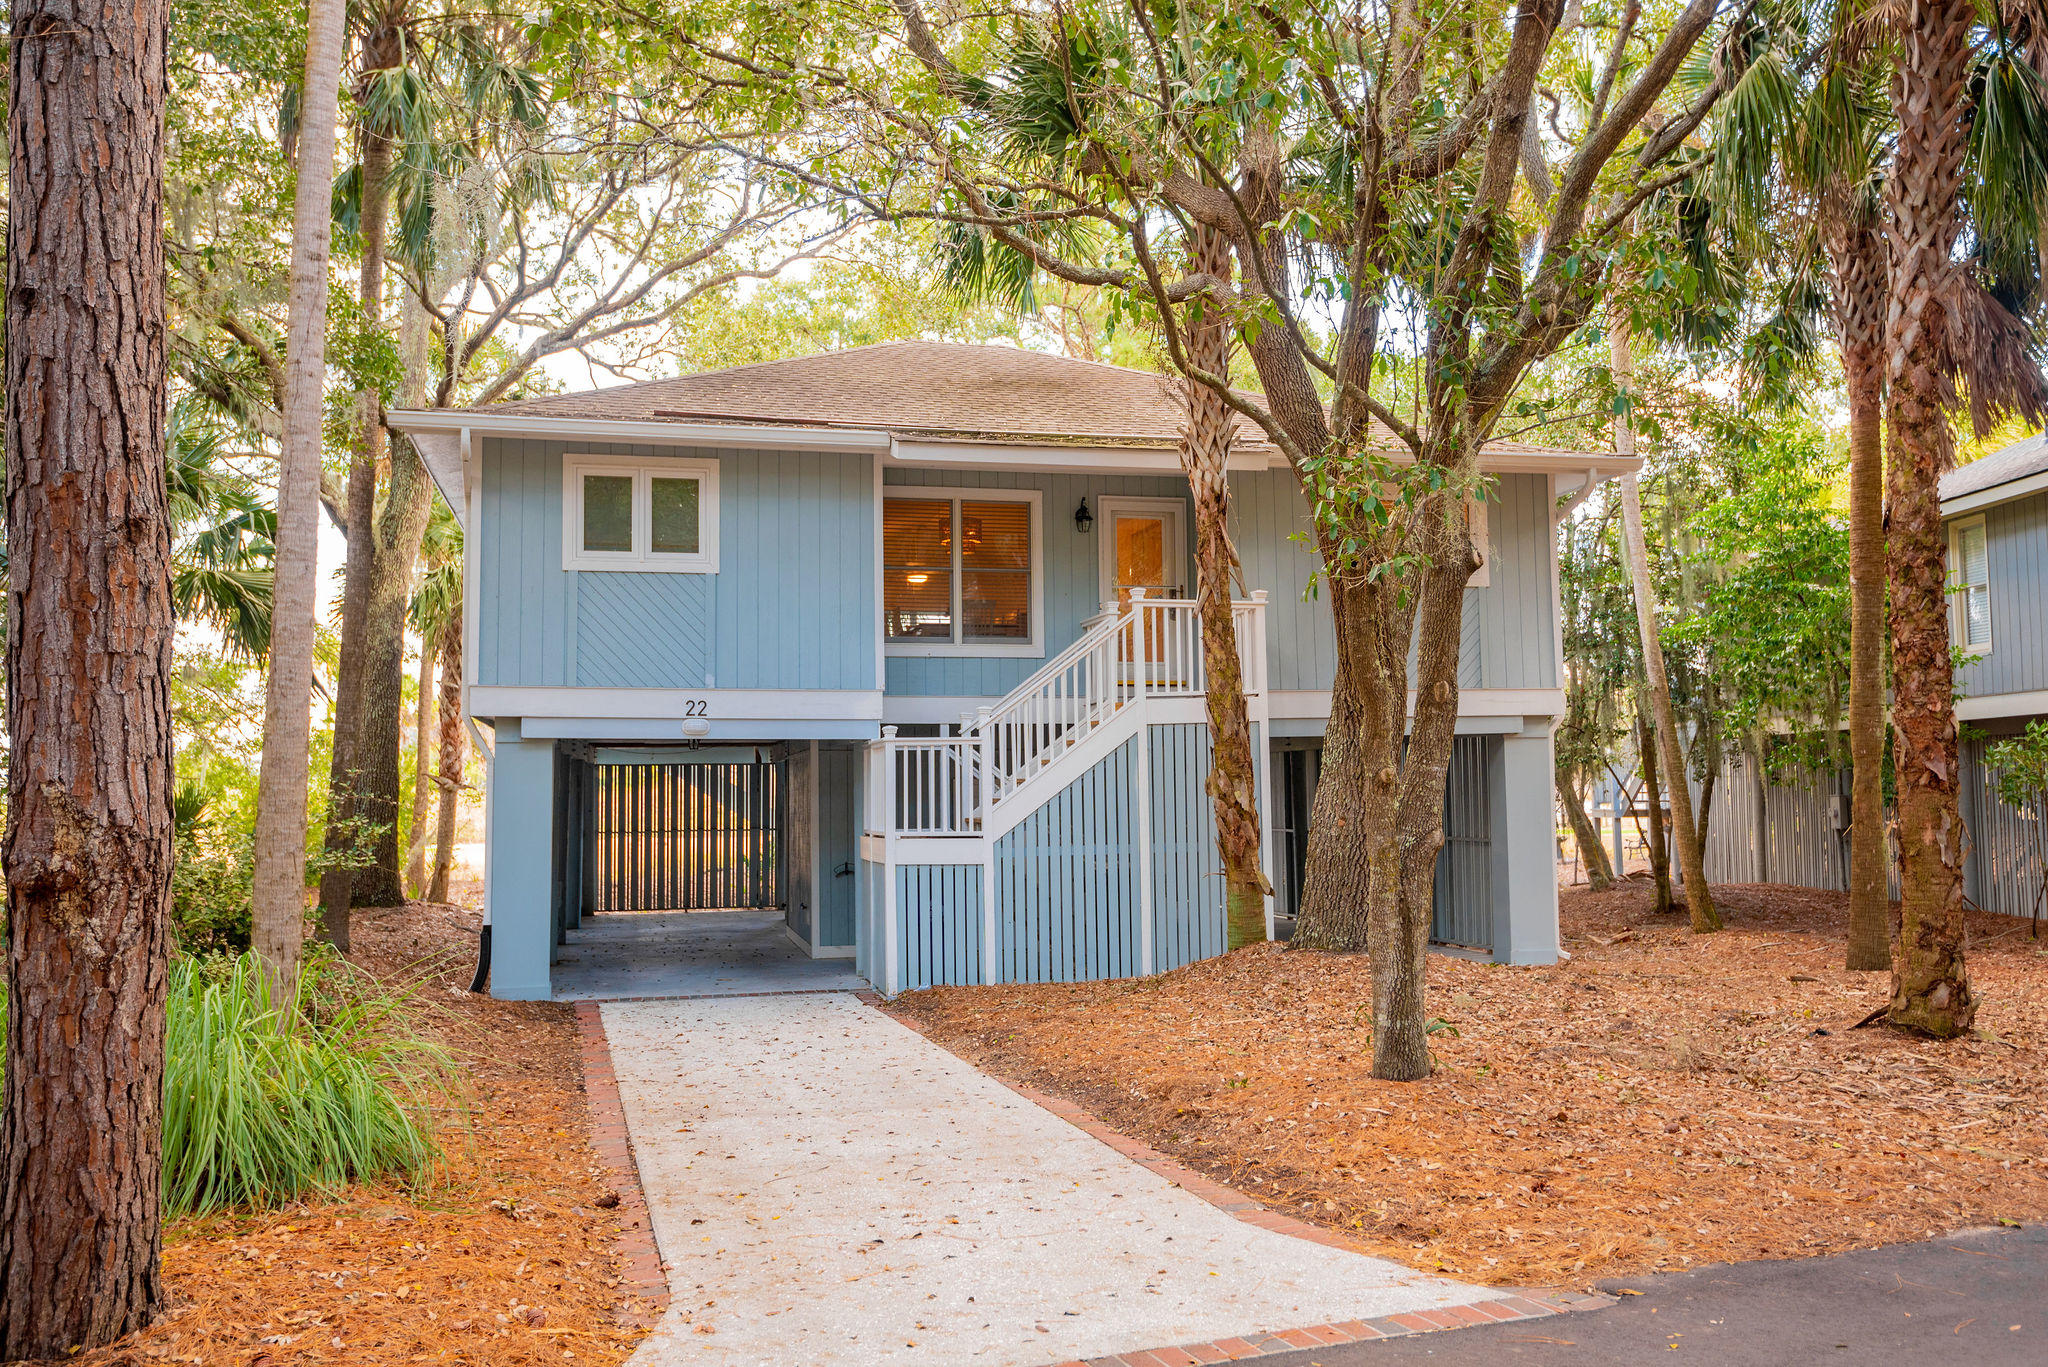 Wild Dunes Homes For Sale - 22 Twin Oaks, Isle of Palms, SC - 17